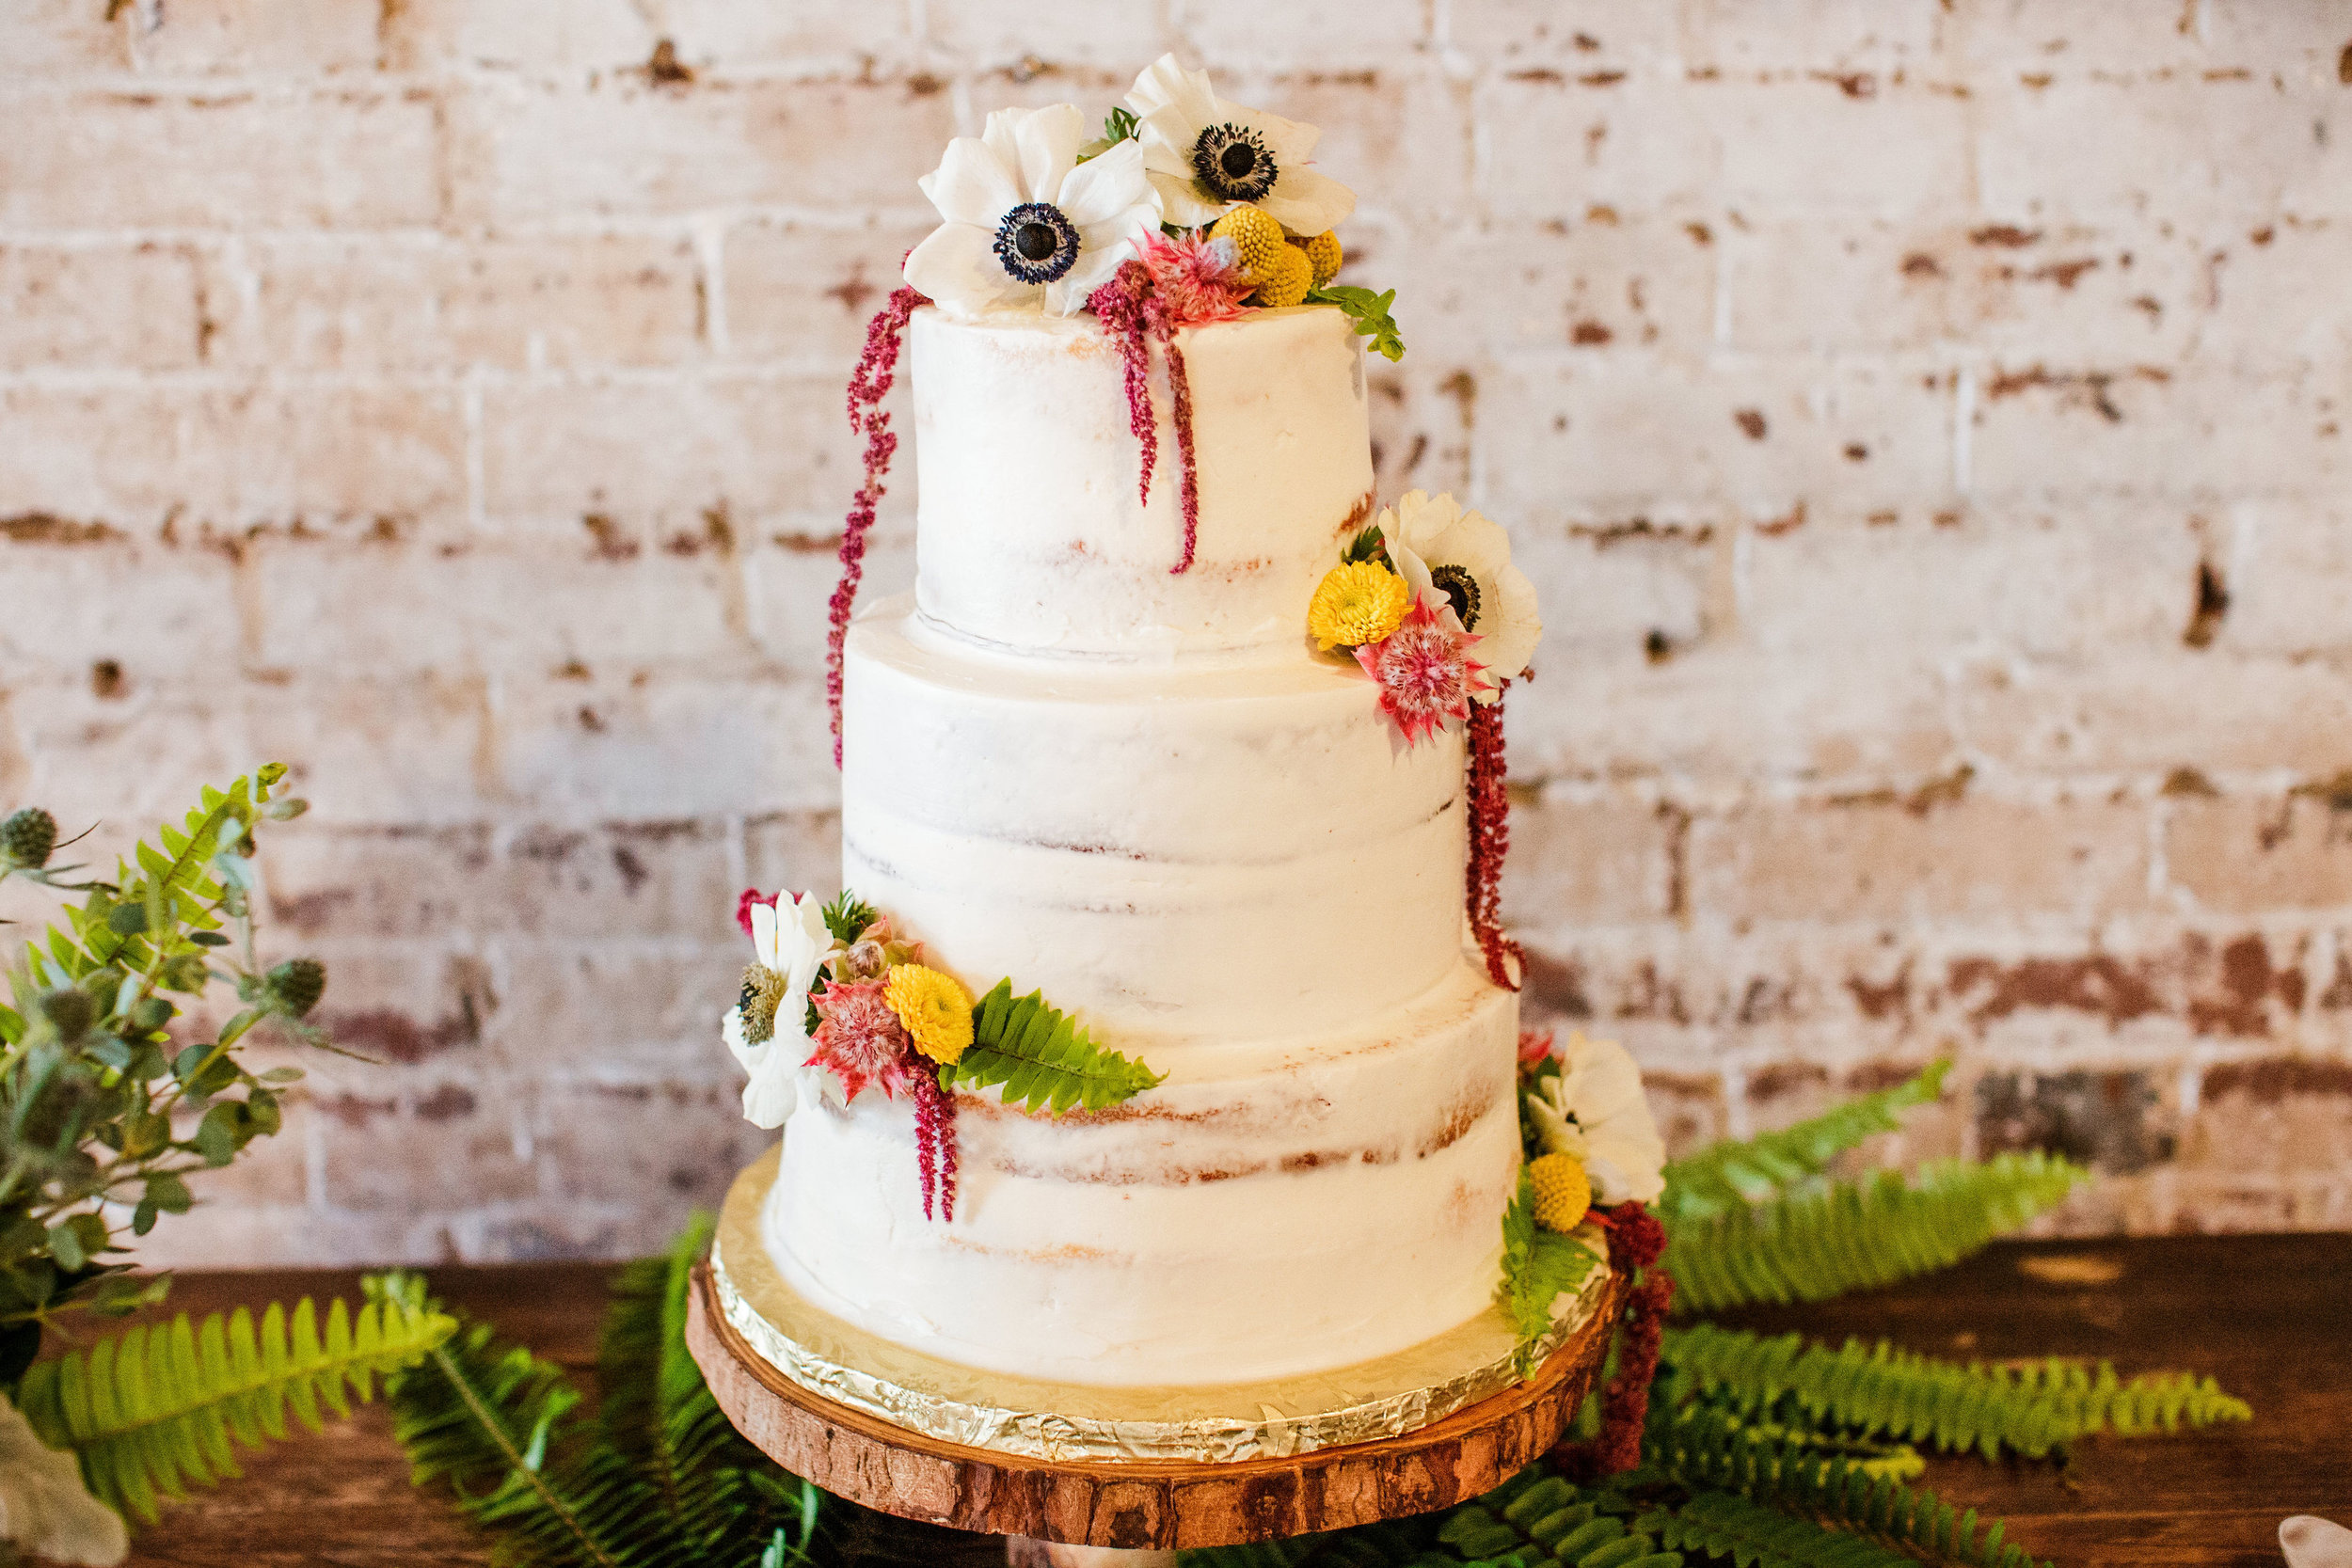 Scrapped Cake with Floral .jpg